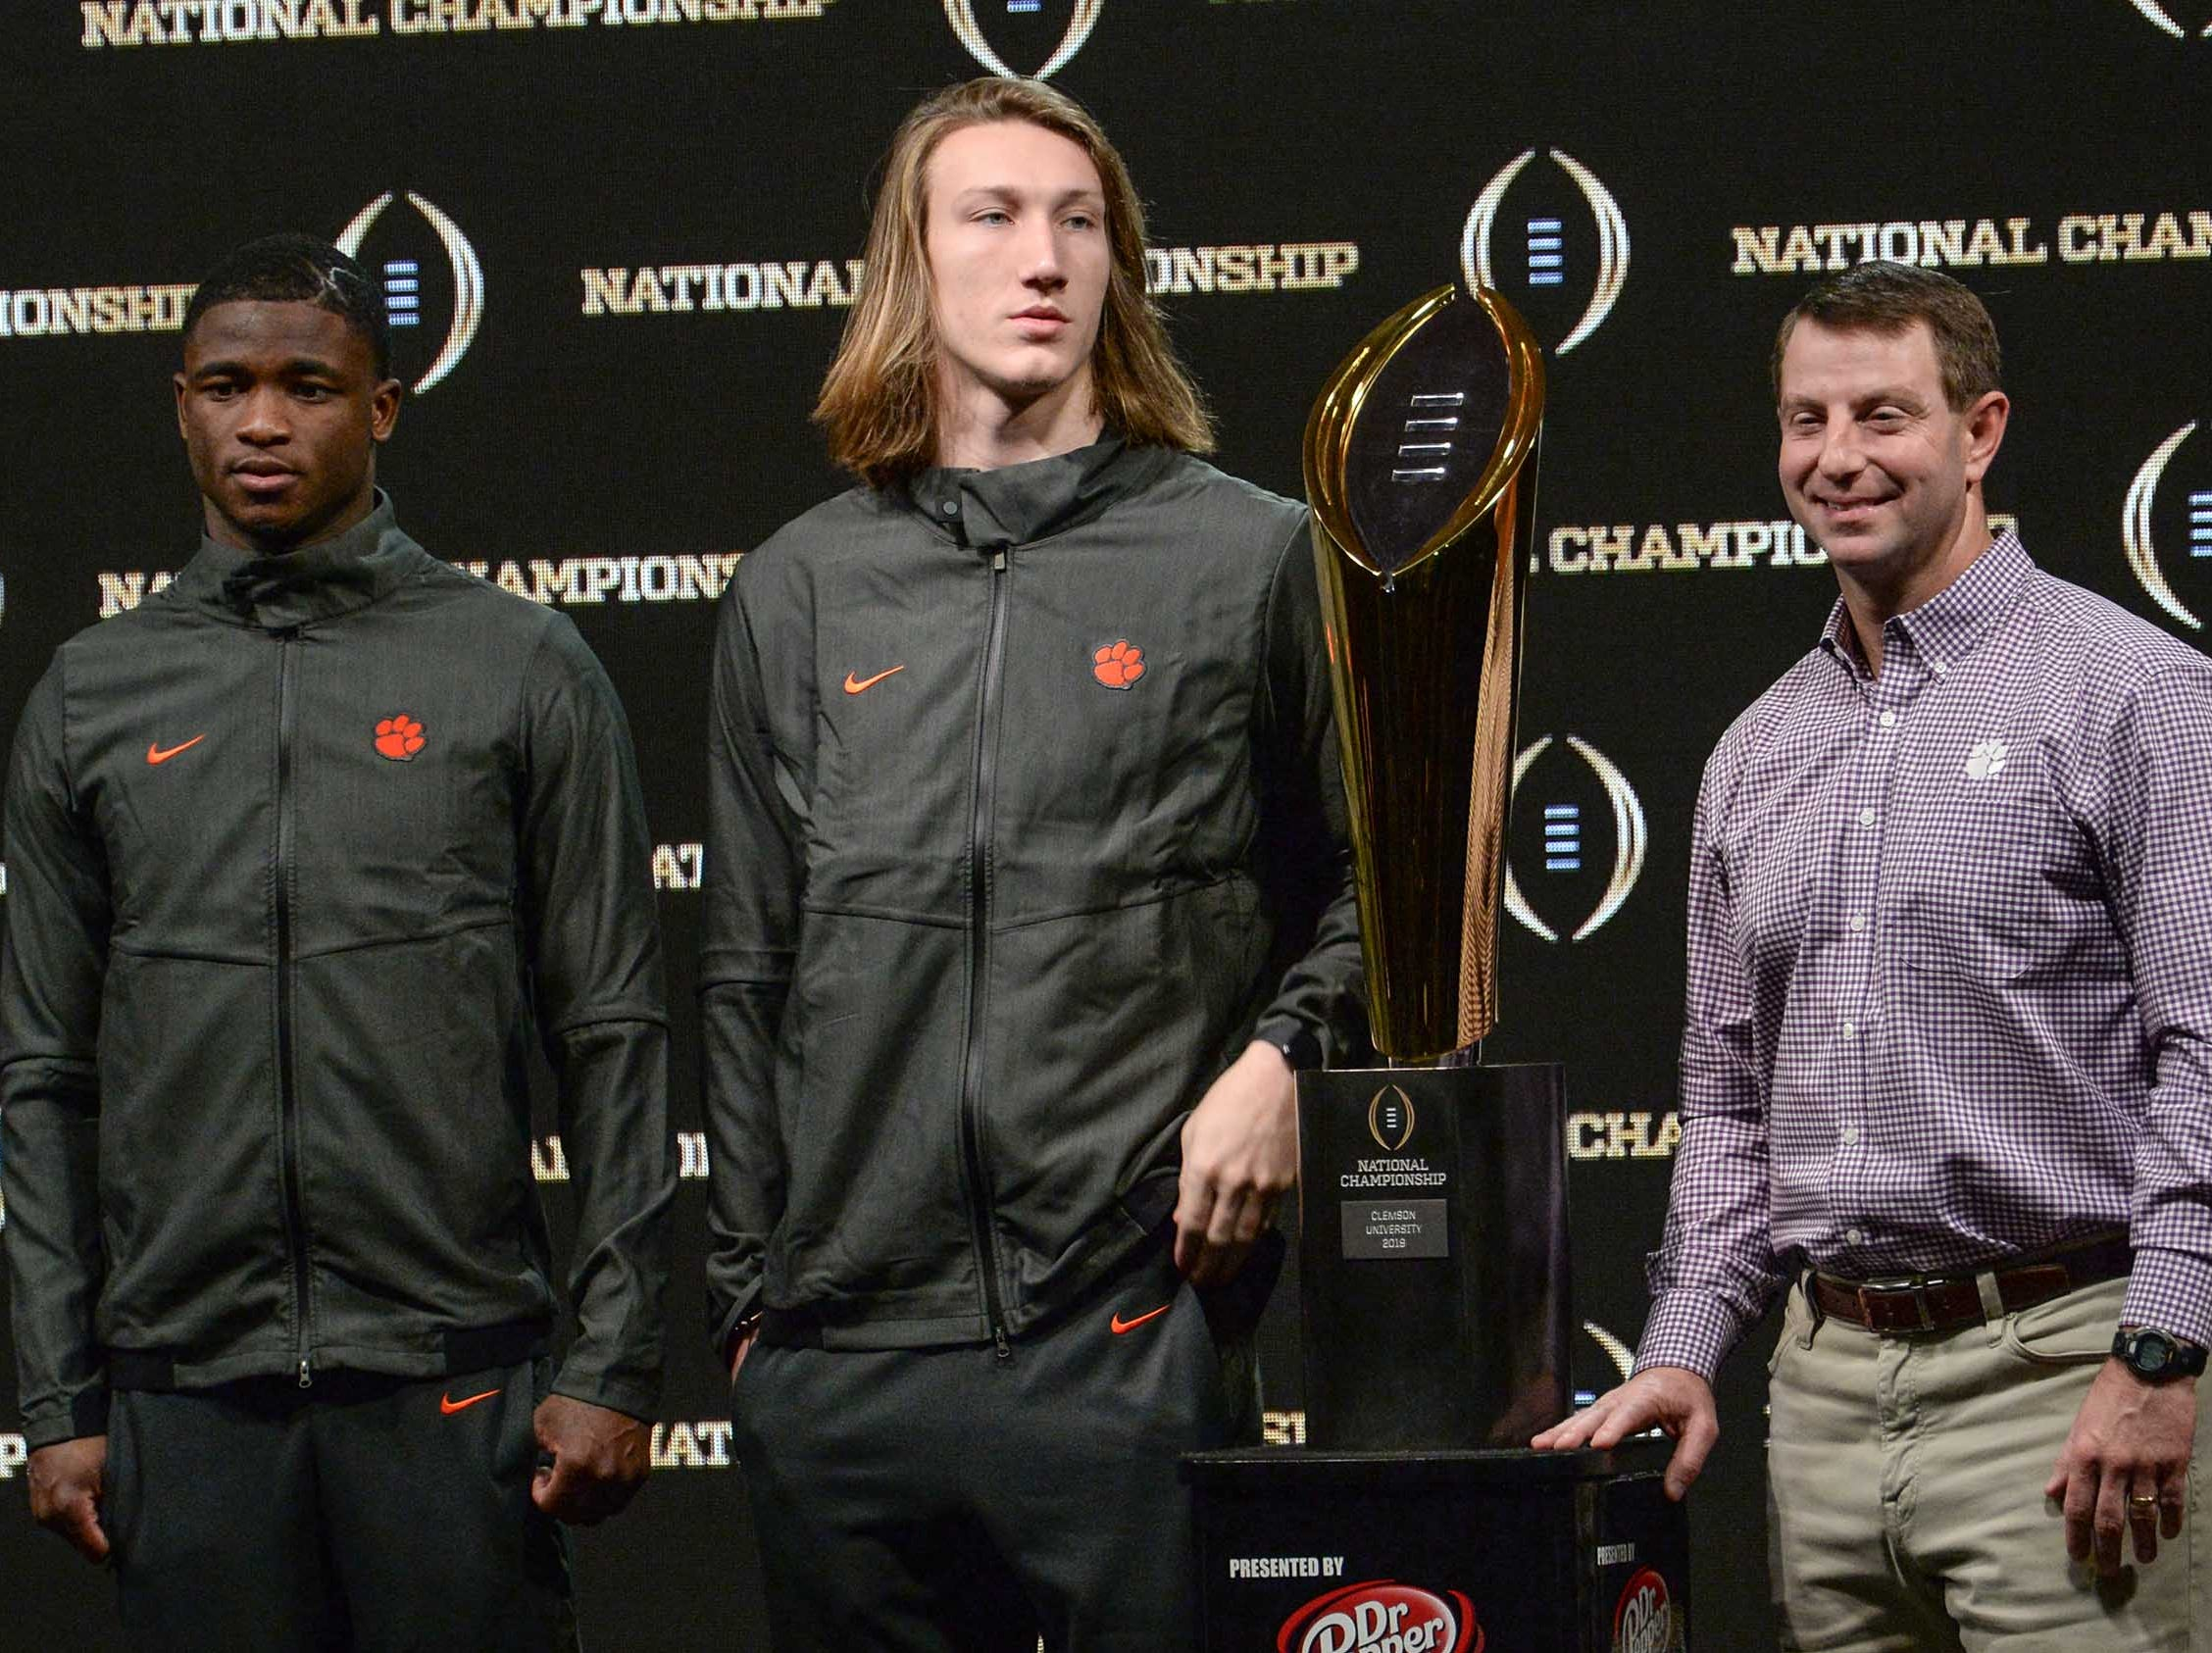 Clemson cornerback Trayvon Mullen, left, quarterback Trevor Lawrence and Head Coach Dabo Swinney stand near the championship trophy during the champions press conference the day after the College Football Championship in San Jose, California Tuesday, January 8, 2019.